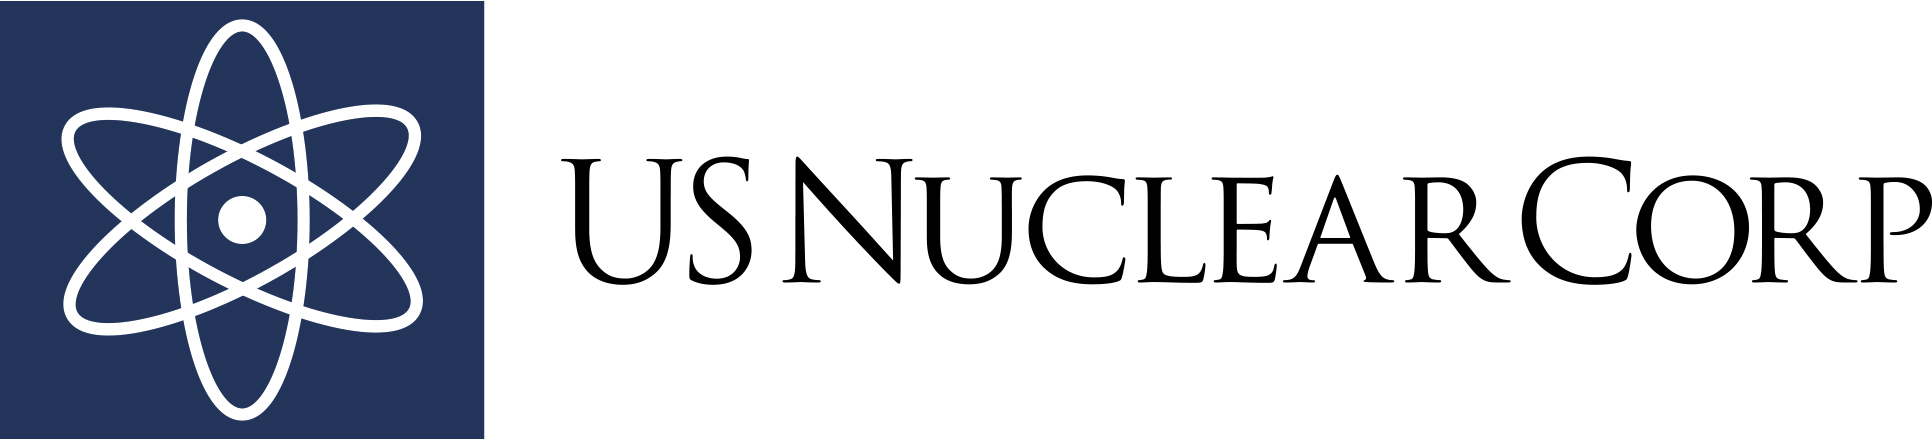 "Uptick Newswire Hosts Bob Goldstein of US Nuclear Corp. on ""Stock Day"" Podcast US Nuclear Receives New Orders for Replacing Competitor Equipment US Nuclear Expansion in China US Nuclear Corp. Discuss Finalizing Agreement with MIFTEC on StockNewsNow.com"